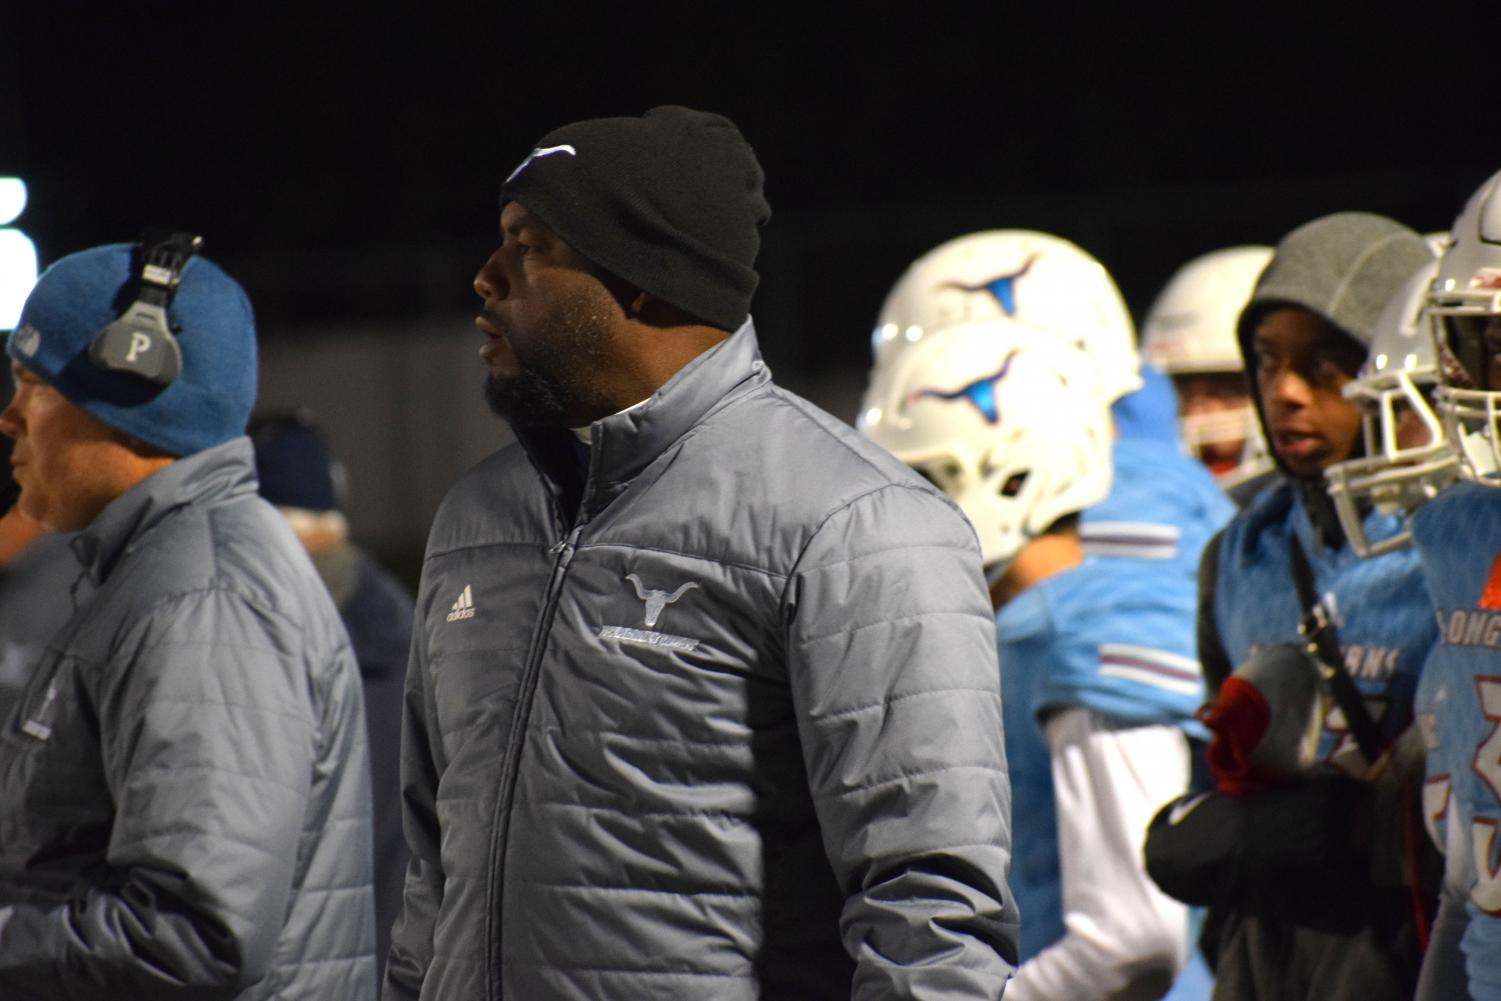 """Leading the running backs, coach Melvin Bethany uses his own experience playing football to help Varsity football against Ladue High school. Bethany has been the running back coach for the last 11 years. """"He does a great job teaching the game,"""" sophomore Tyree Simms said. """"He really wants to help players get better and meet their goals."""""""